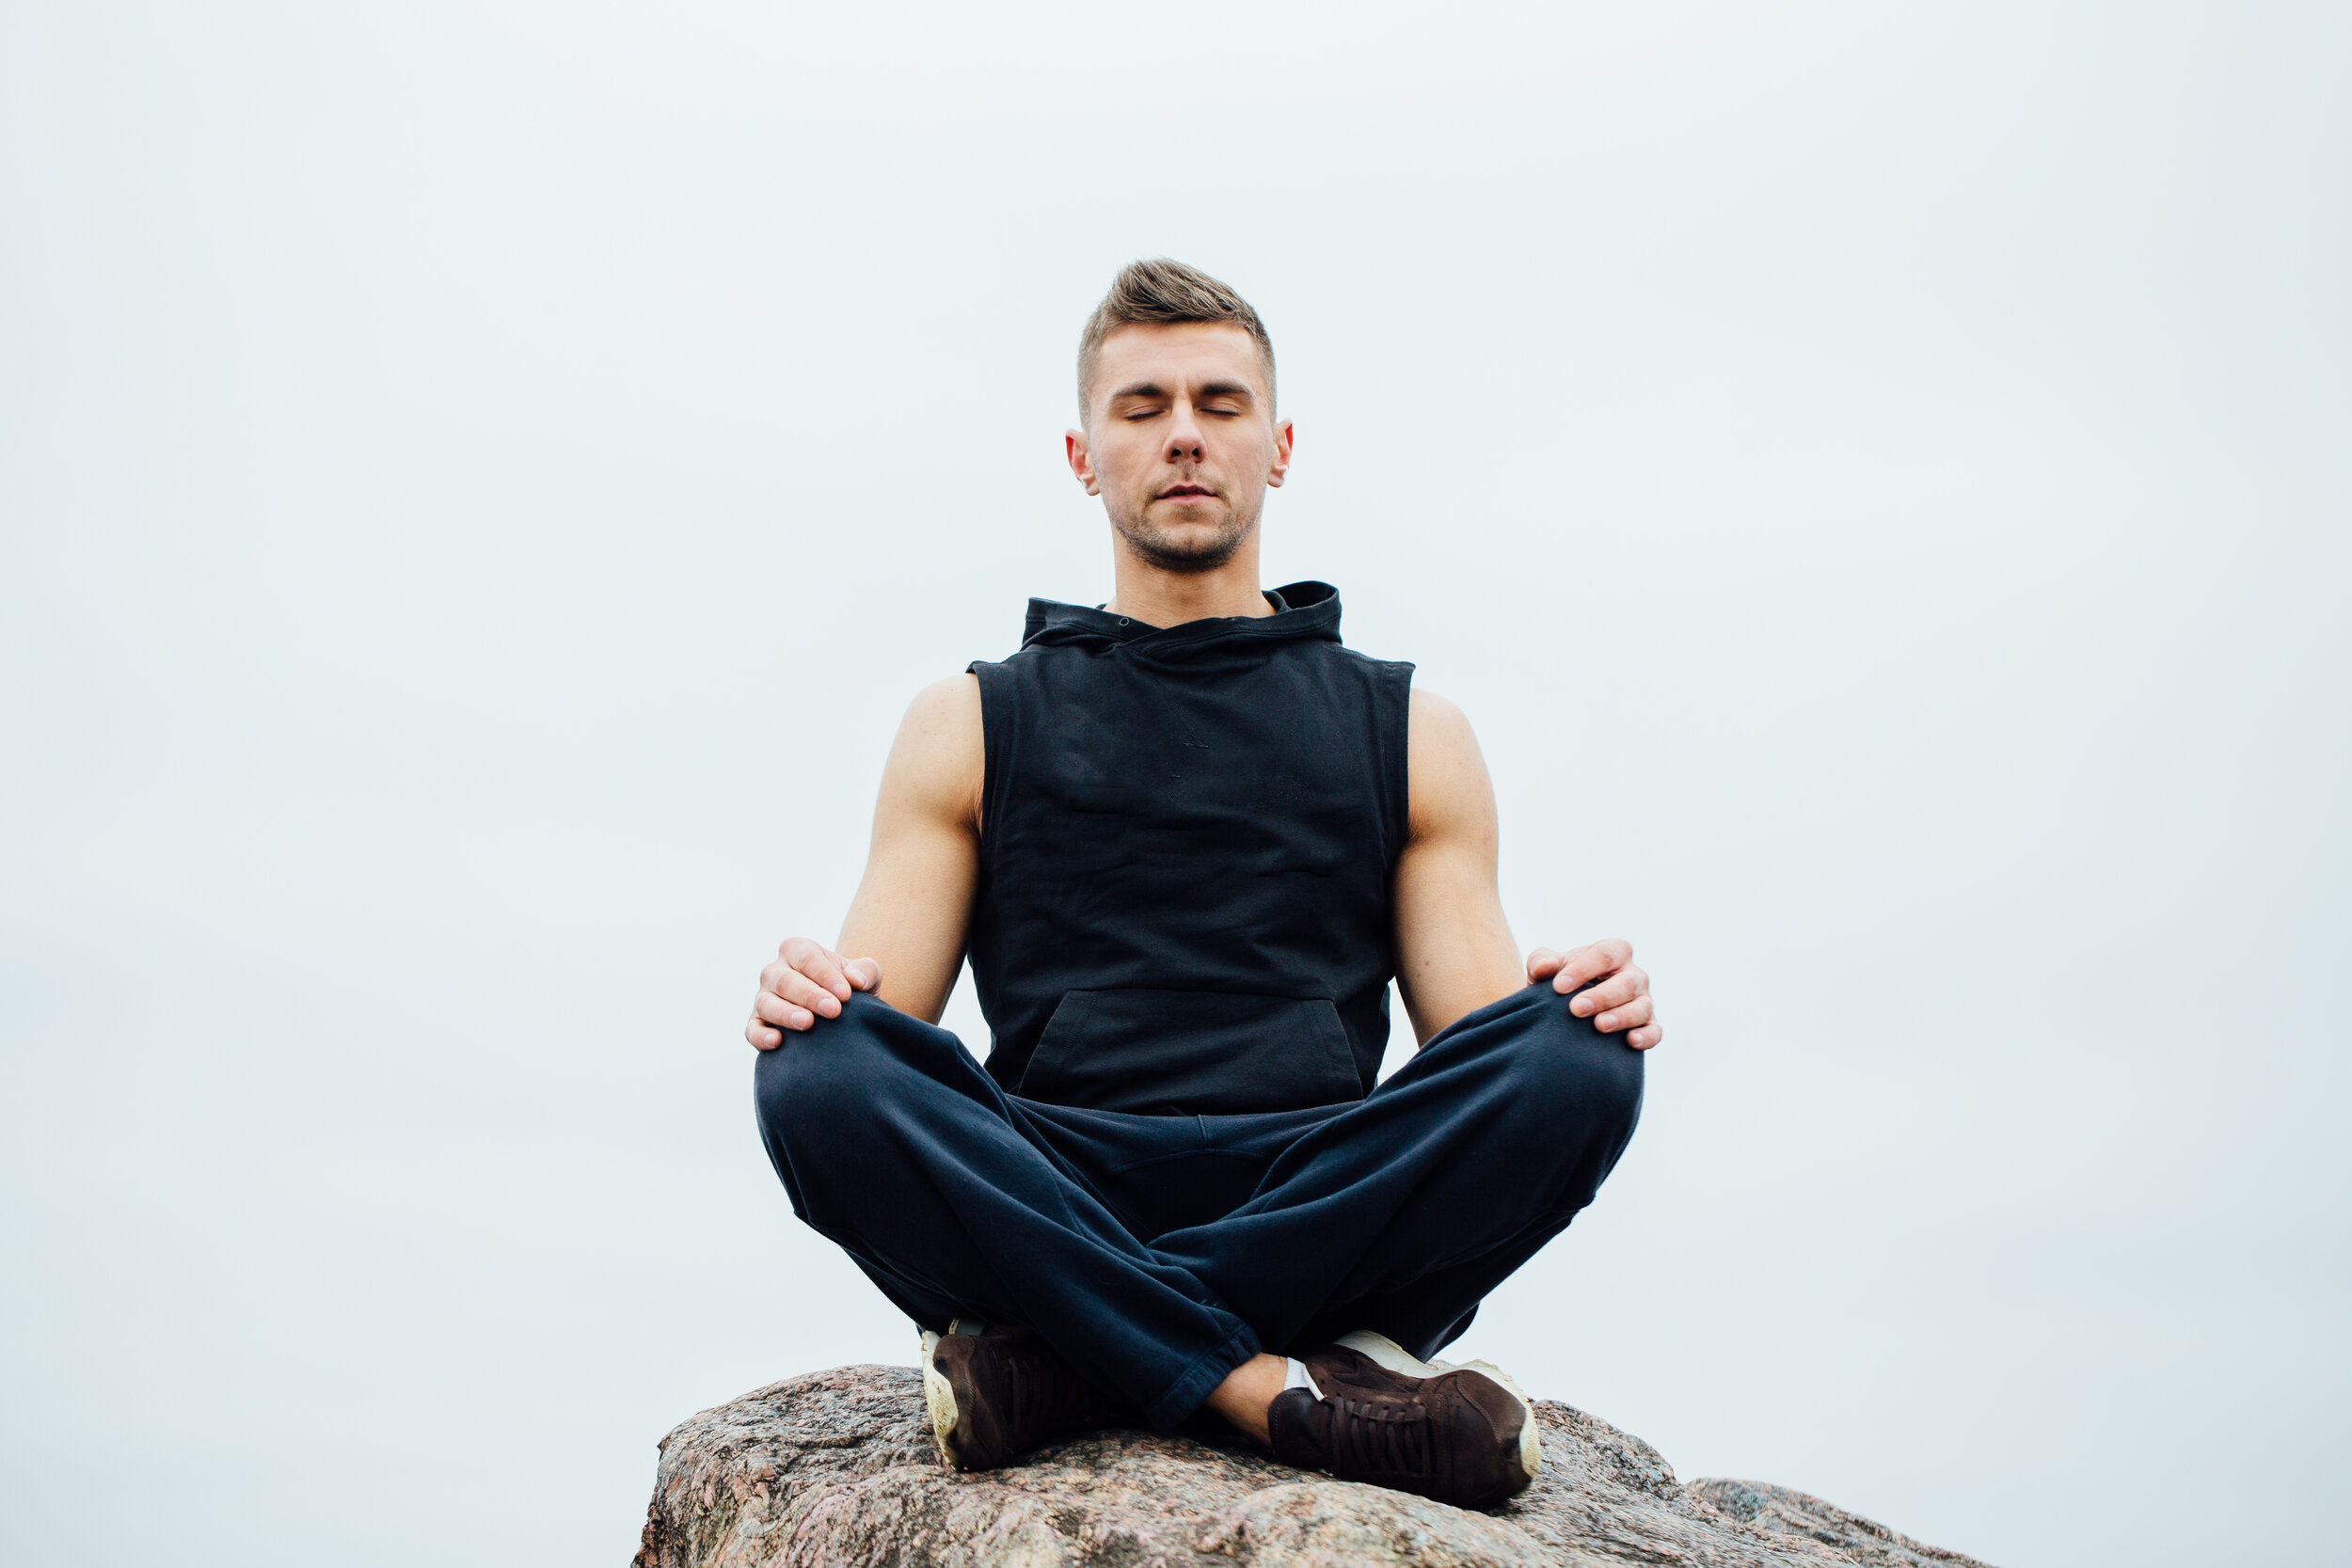 Copy of Strong fitness yoga man in lotus pose on the rock beach near the ocean. Harmonic concept.